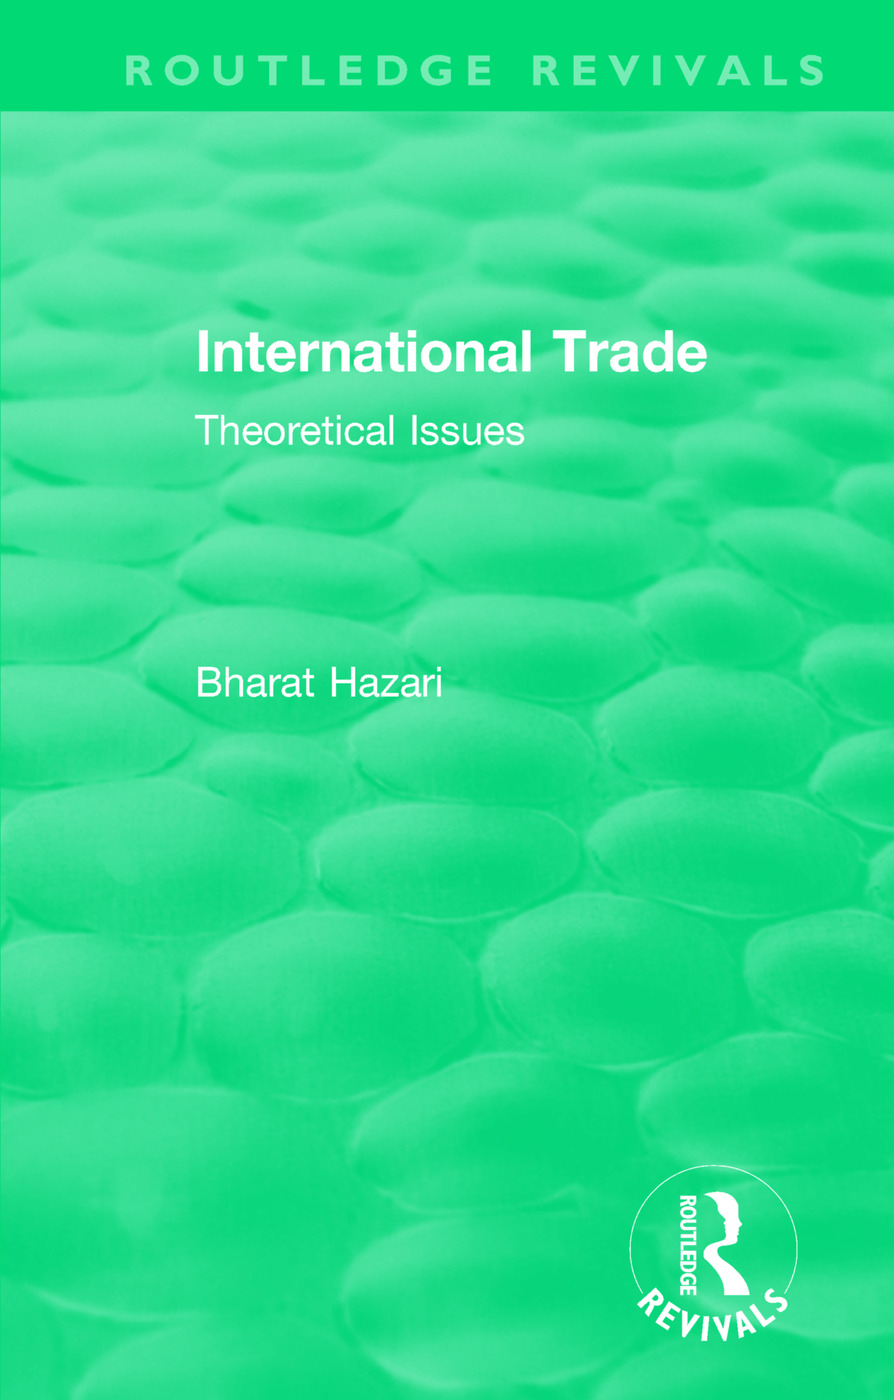 Routledge Revivals: International Trade (1986): Theoretical Issues book cover